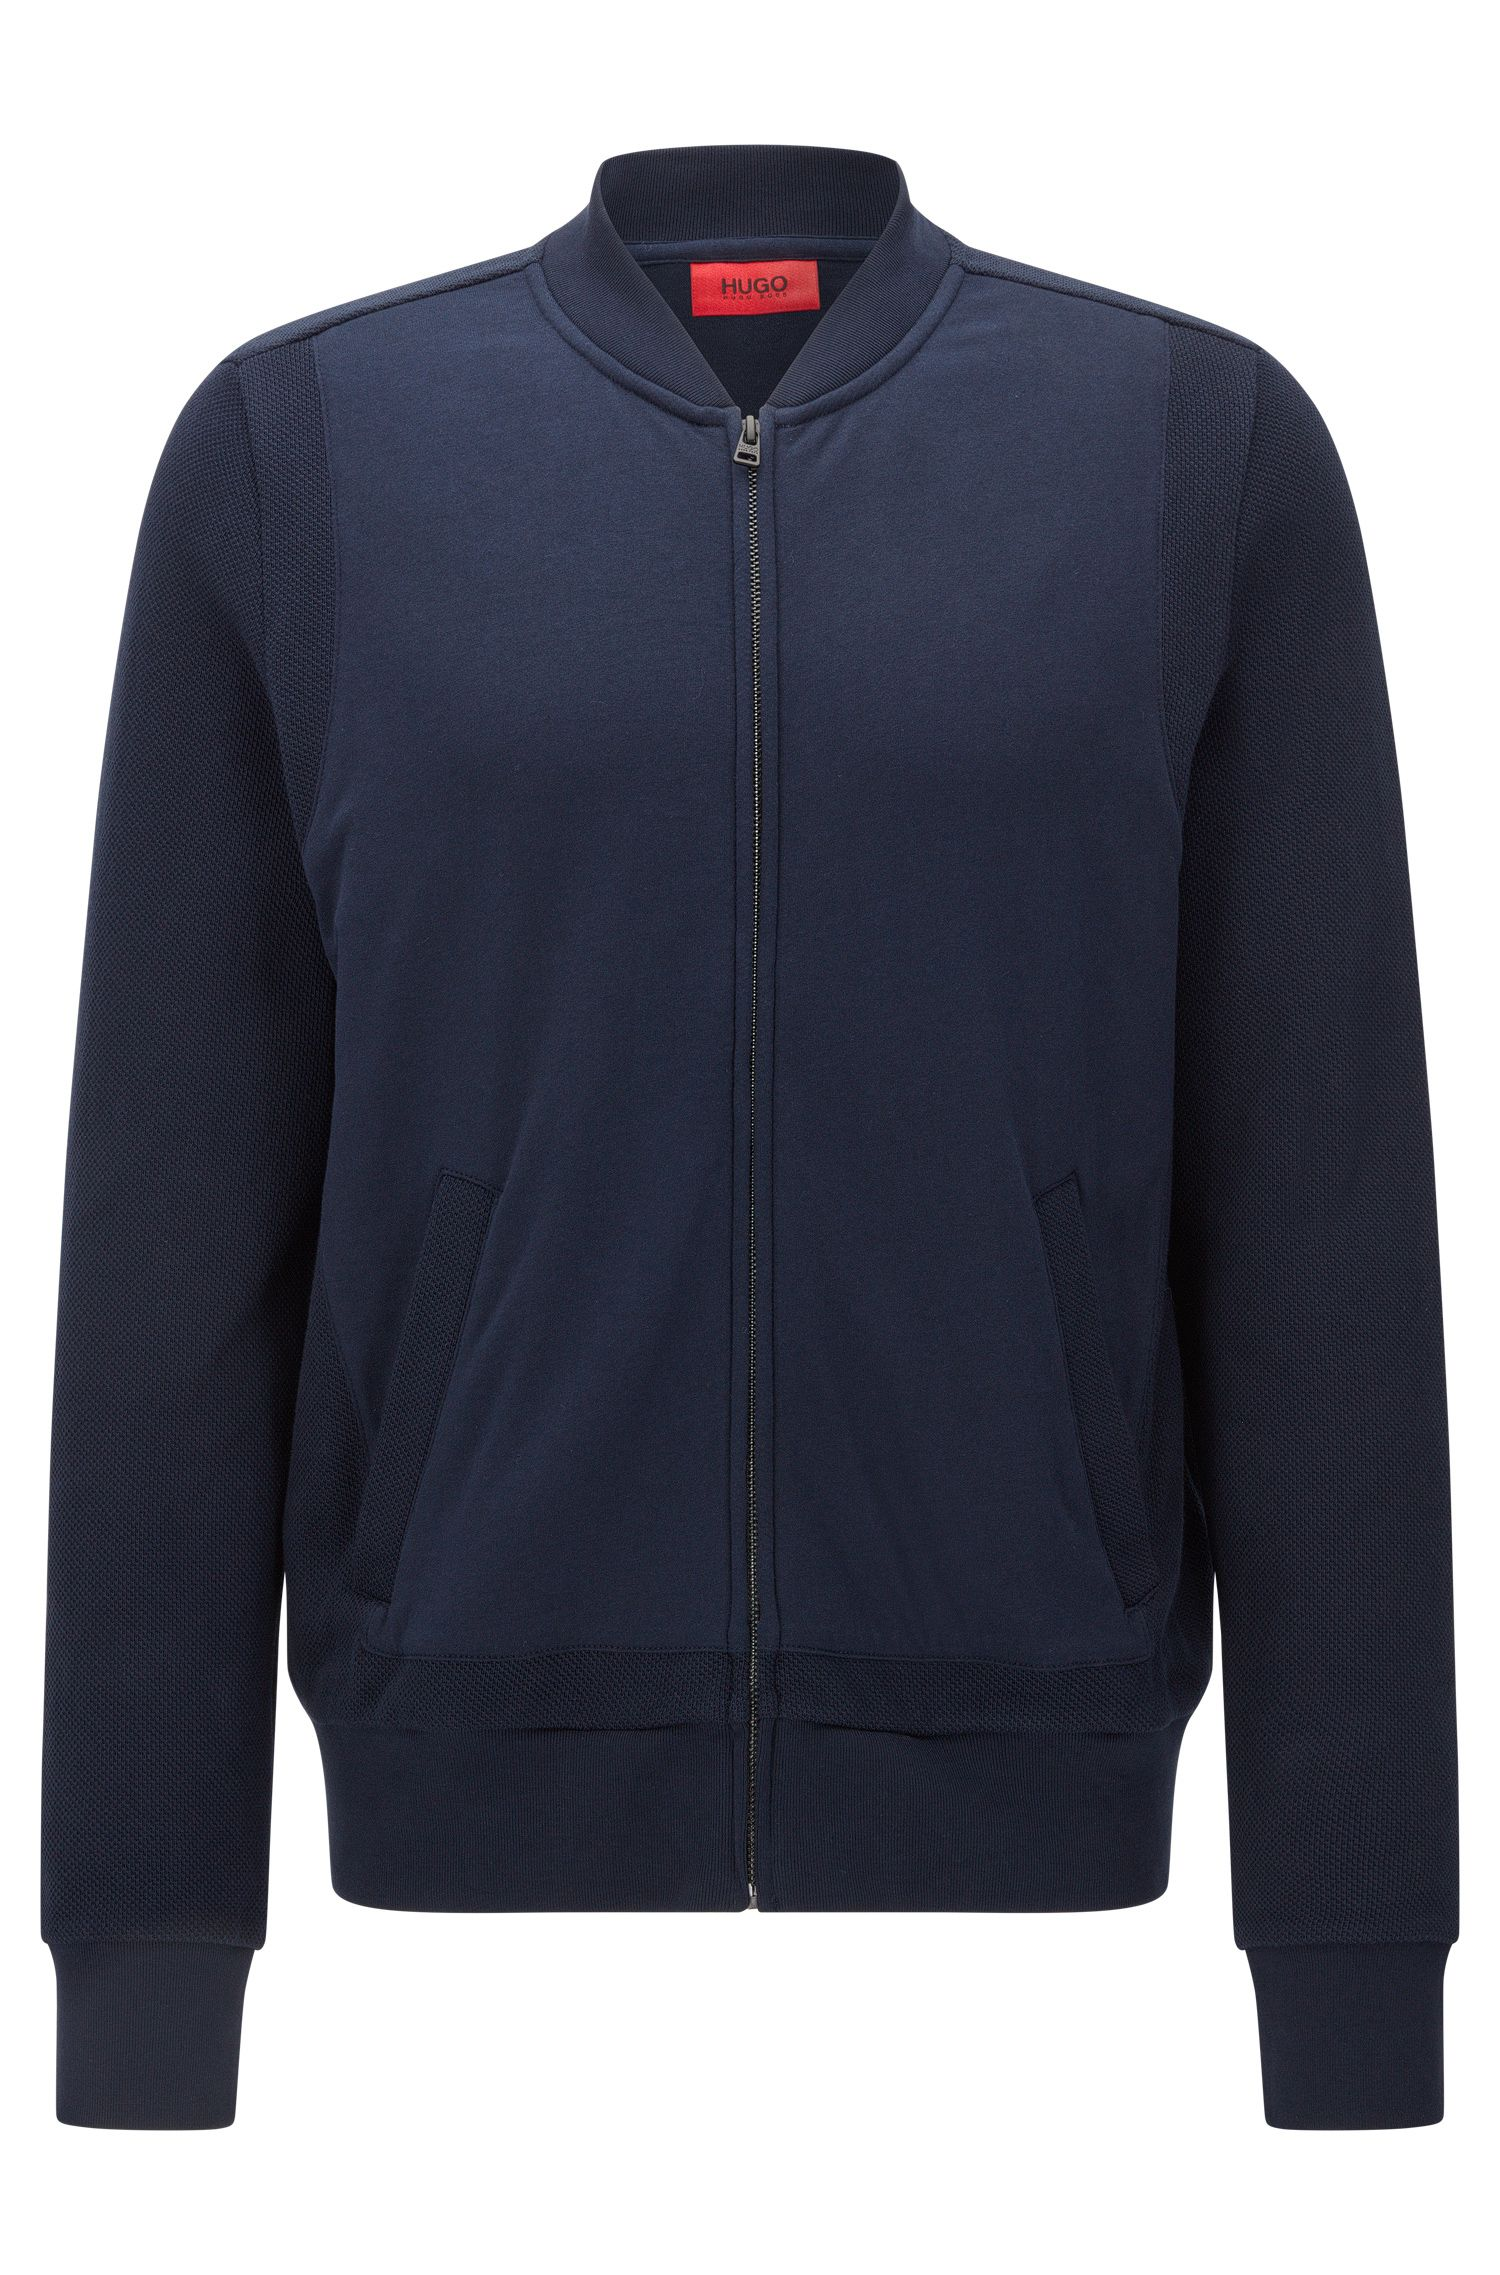 Regular Fit Sweatshirt-Jacke aus Baumwolle im Struktur-Mix: 'Dencore'